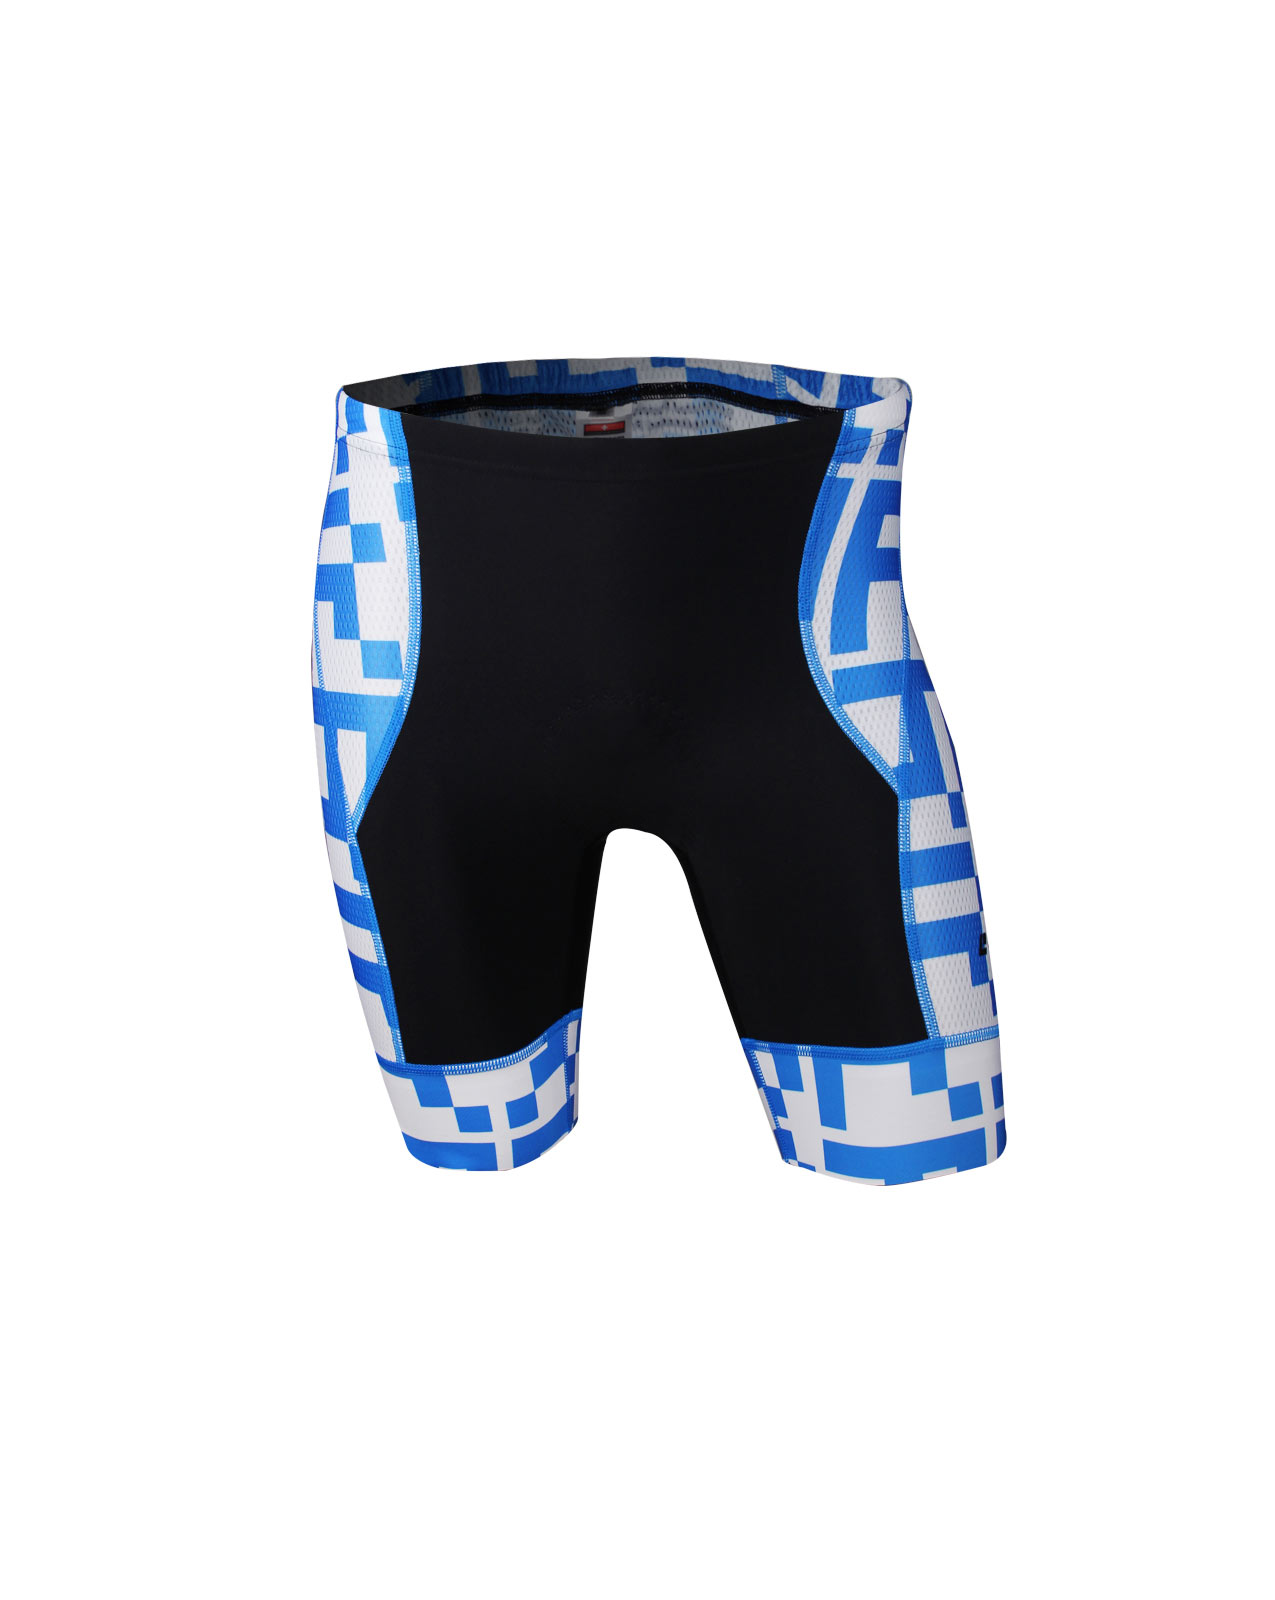 Swiss POWERMESH Tri Shorts